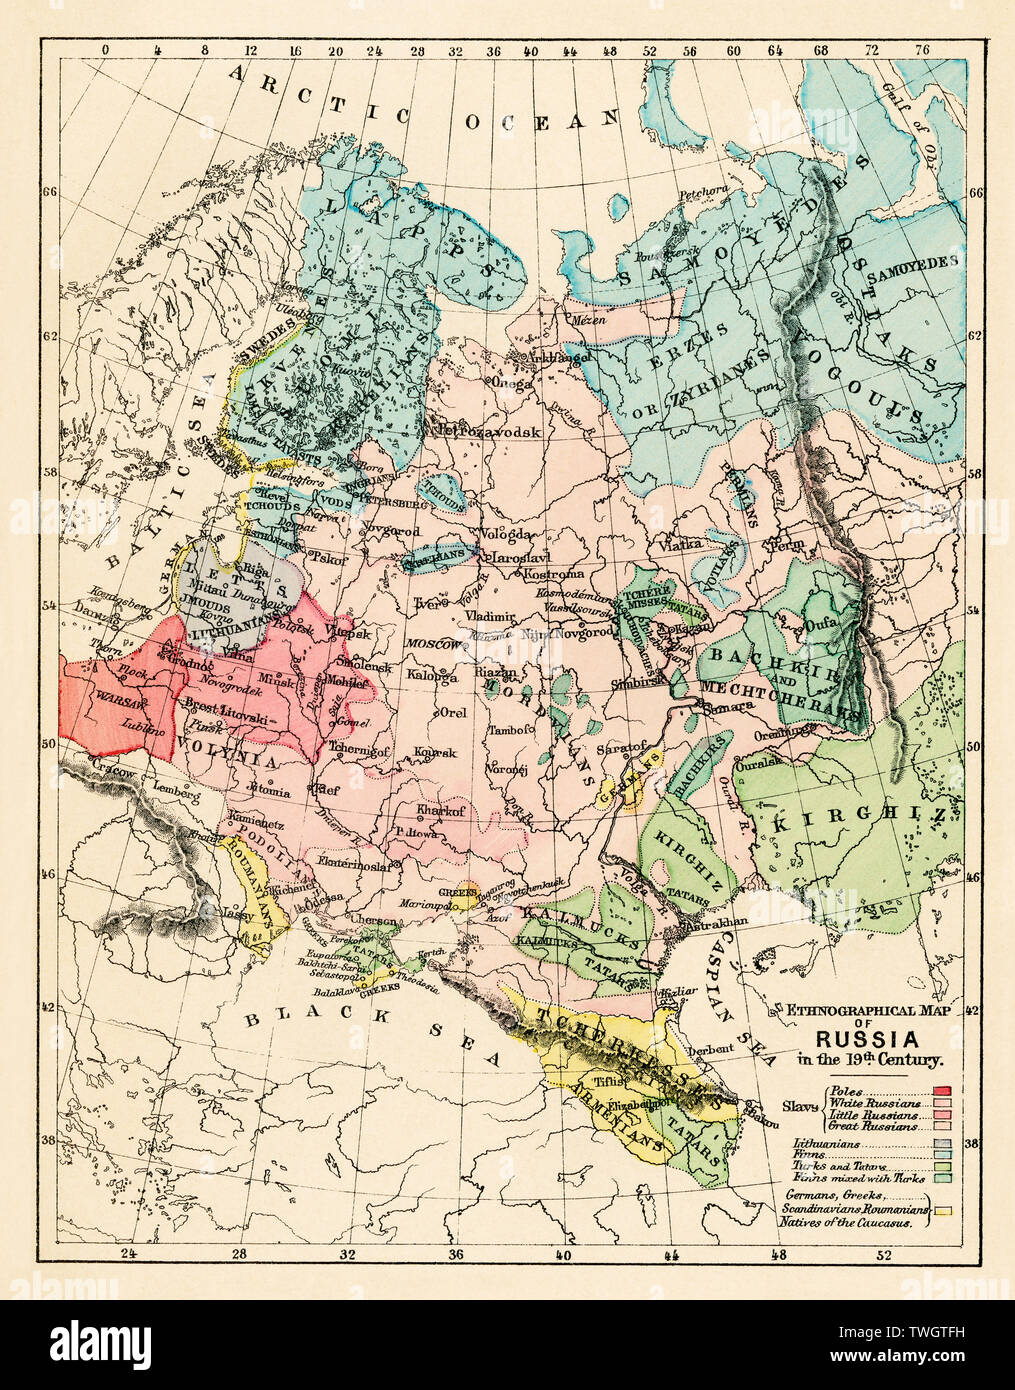 Ethnographic map of Russian Empire in the 19th century. Color lithograph Stock Photo